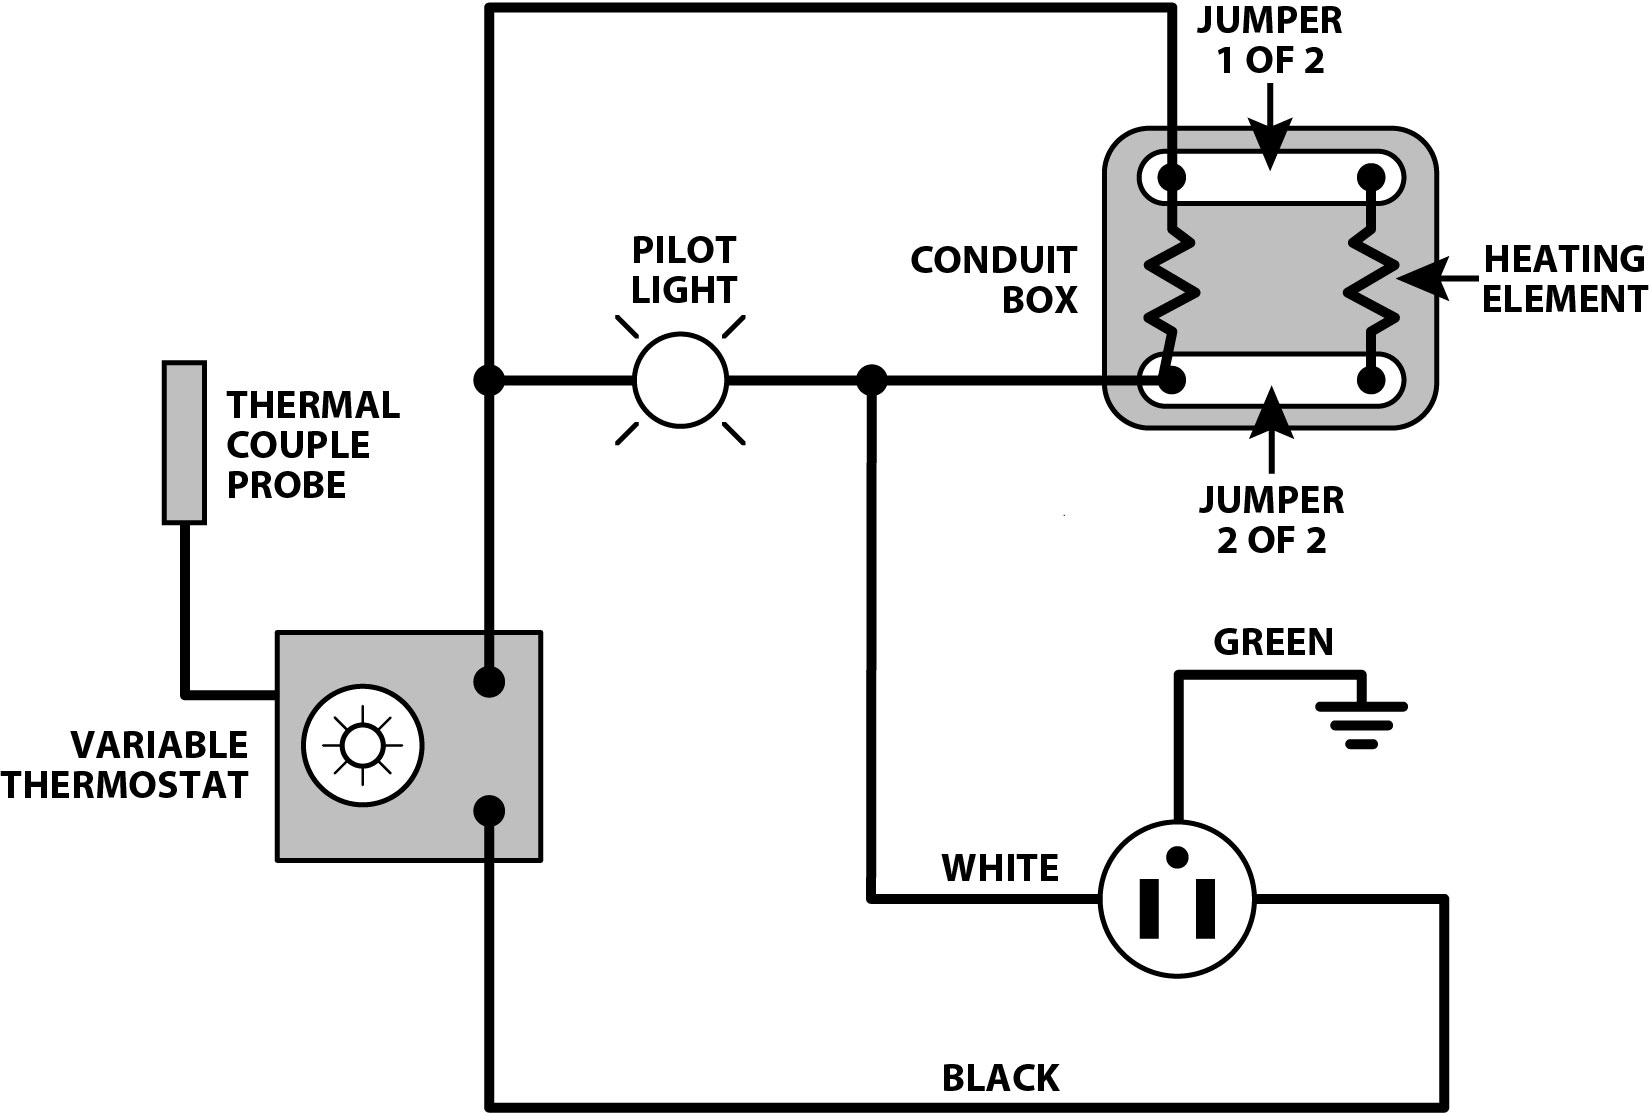 wiring diagram for dryer plug with 120 240 Volt Wiring Diagram on 3 Prong Plug Wiring Colors moreover 14 30p 4 Prong Plug To 6 50r 3 Pin Receptacle Welder Plasma Cutter 220 Machinery To Range Stove Oven Dryer Home Appliance Cord Adapter Wire Converter 30a 50a 125250v Getwiredusa also 30 3 Wire Twist Lock Plug Wiring Diagram furthermore 3 Wire Stove Wiring Diagram additionally Wiring Diagram Stove Outlet.